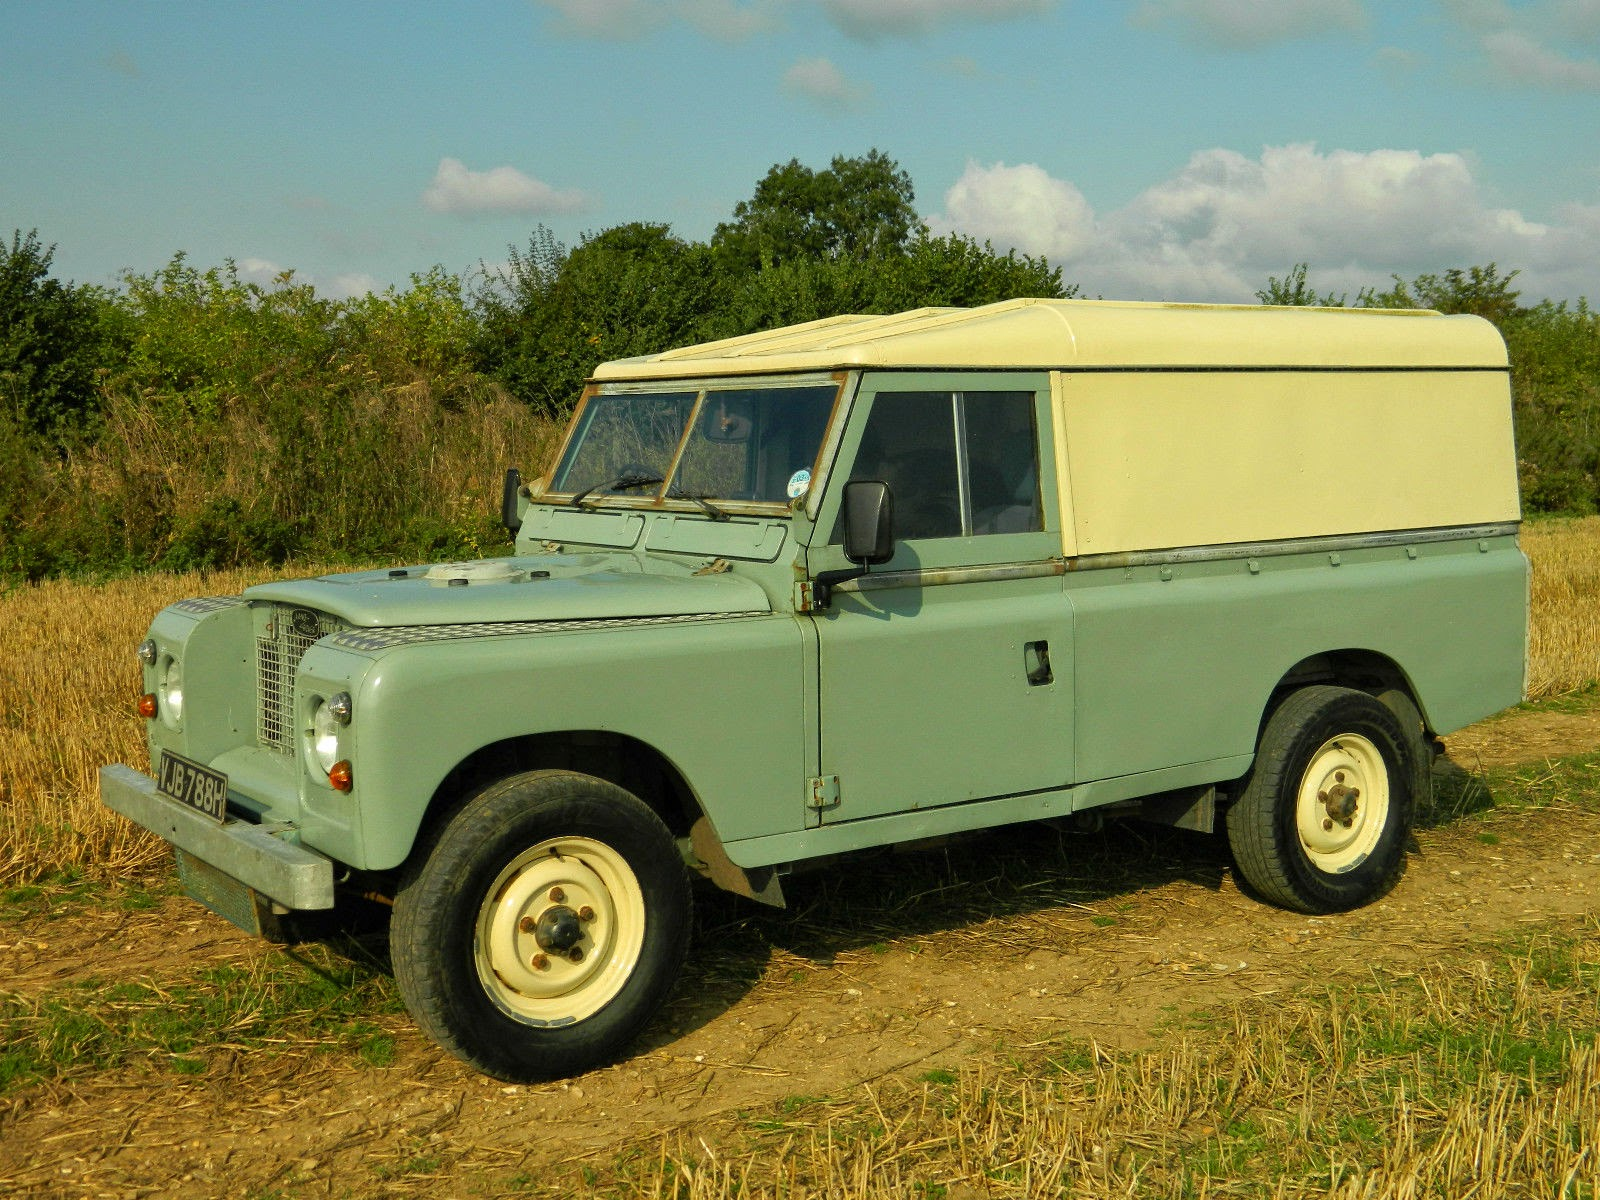 1969 land rover series 2a 109 fully restored auto restorationice. Black Bedroom Furniture Sets. Home Design Ideas